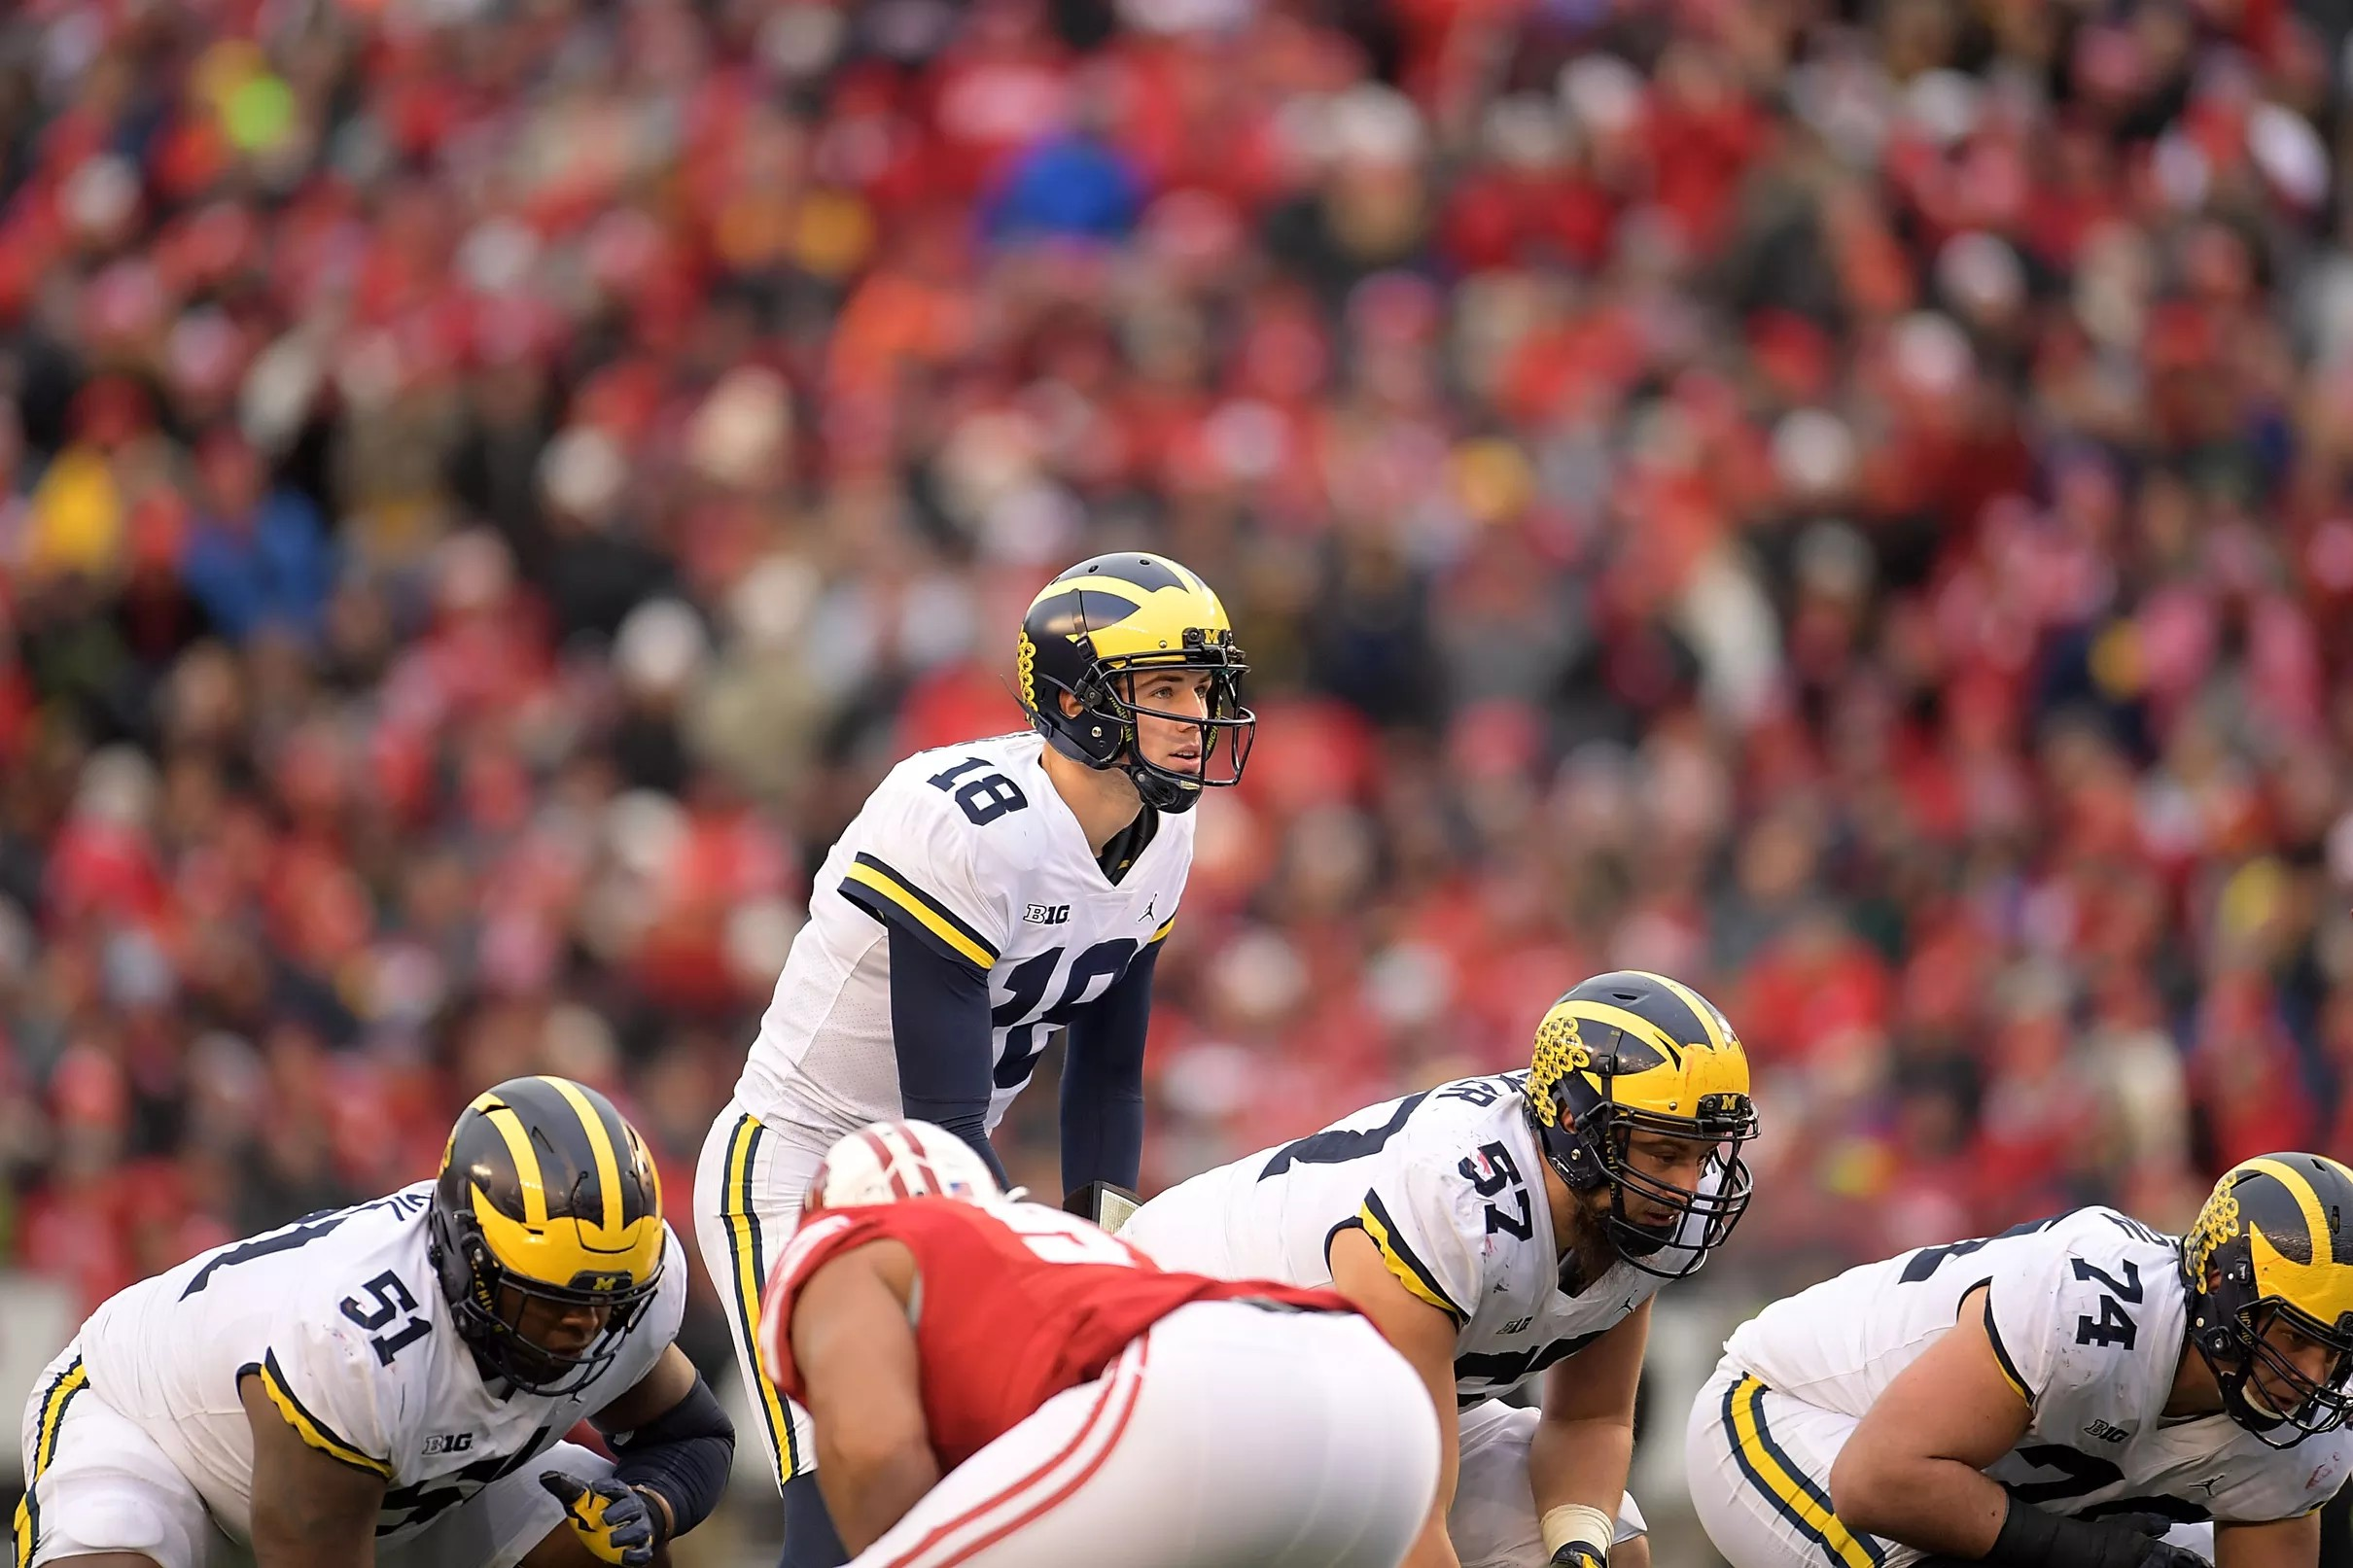 Former Michigan QB Brandon Peters transferring to Illinois